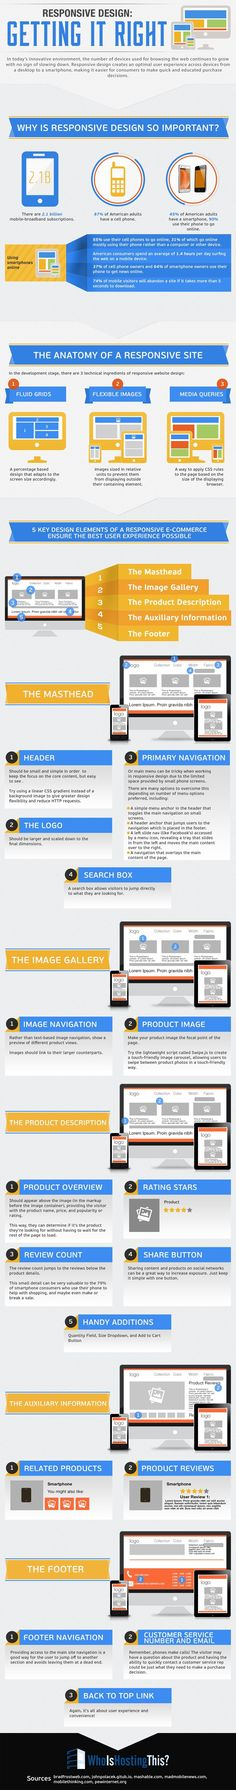 Infographic about how responsive web design works learn more at www.mystifiedbysocialmedia.com Small business responsive web design from $300 with free hosting.